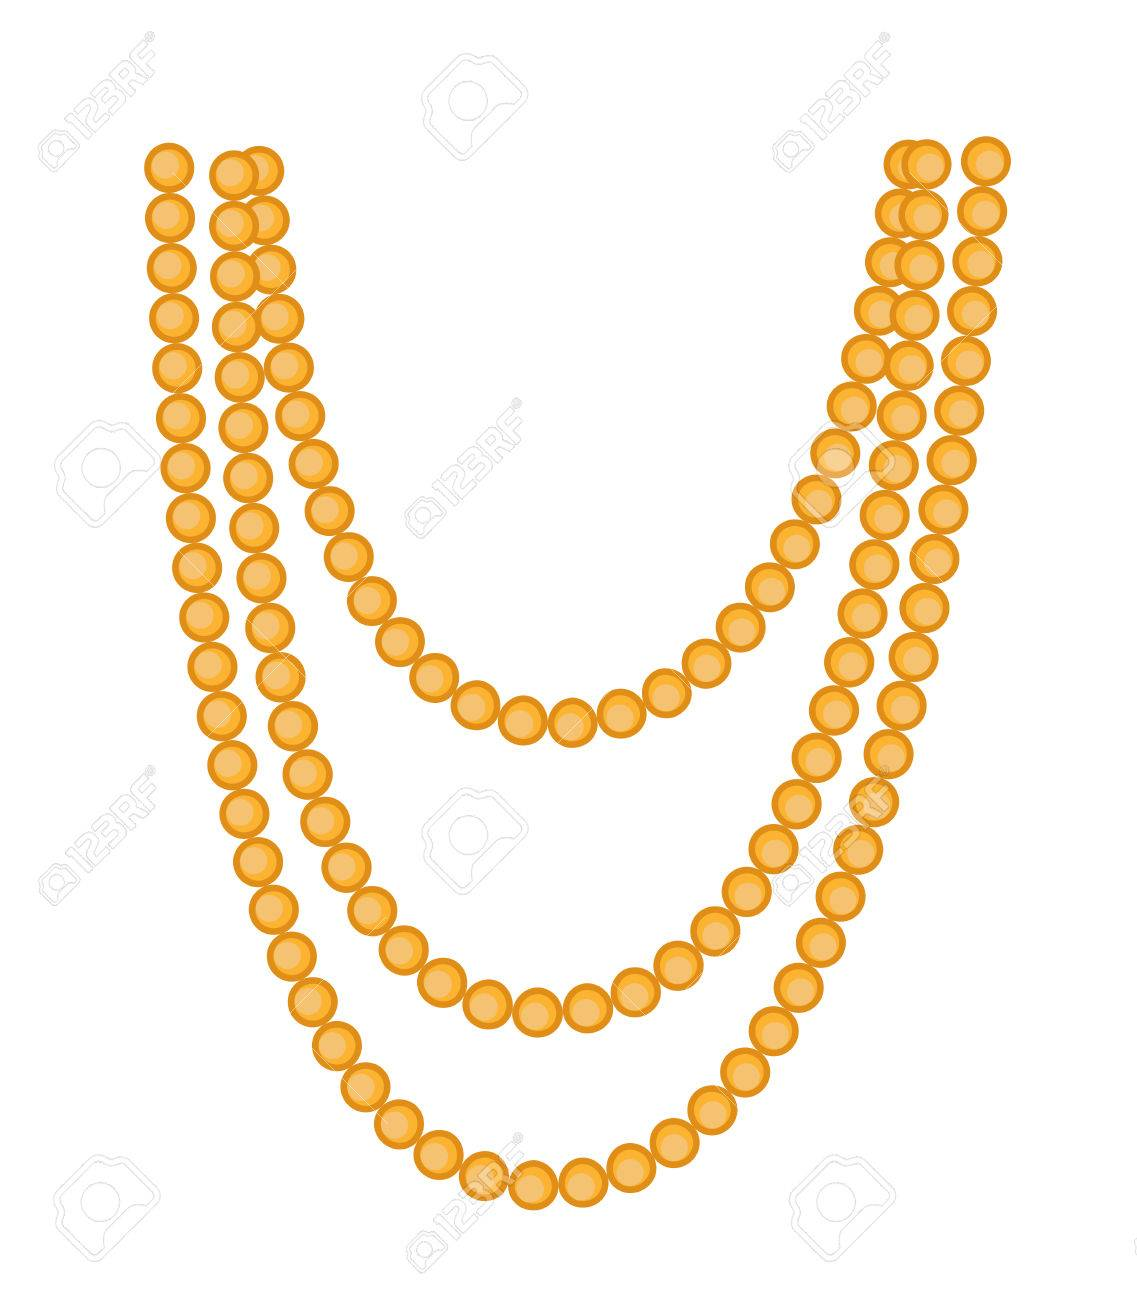 Retro Beads Necklace Clipart.